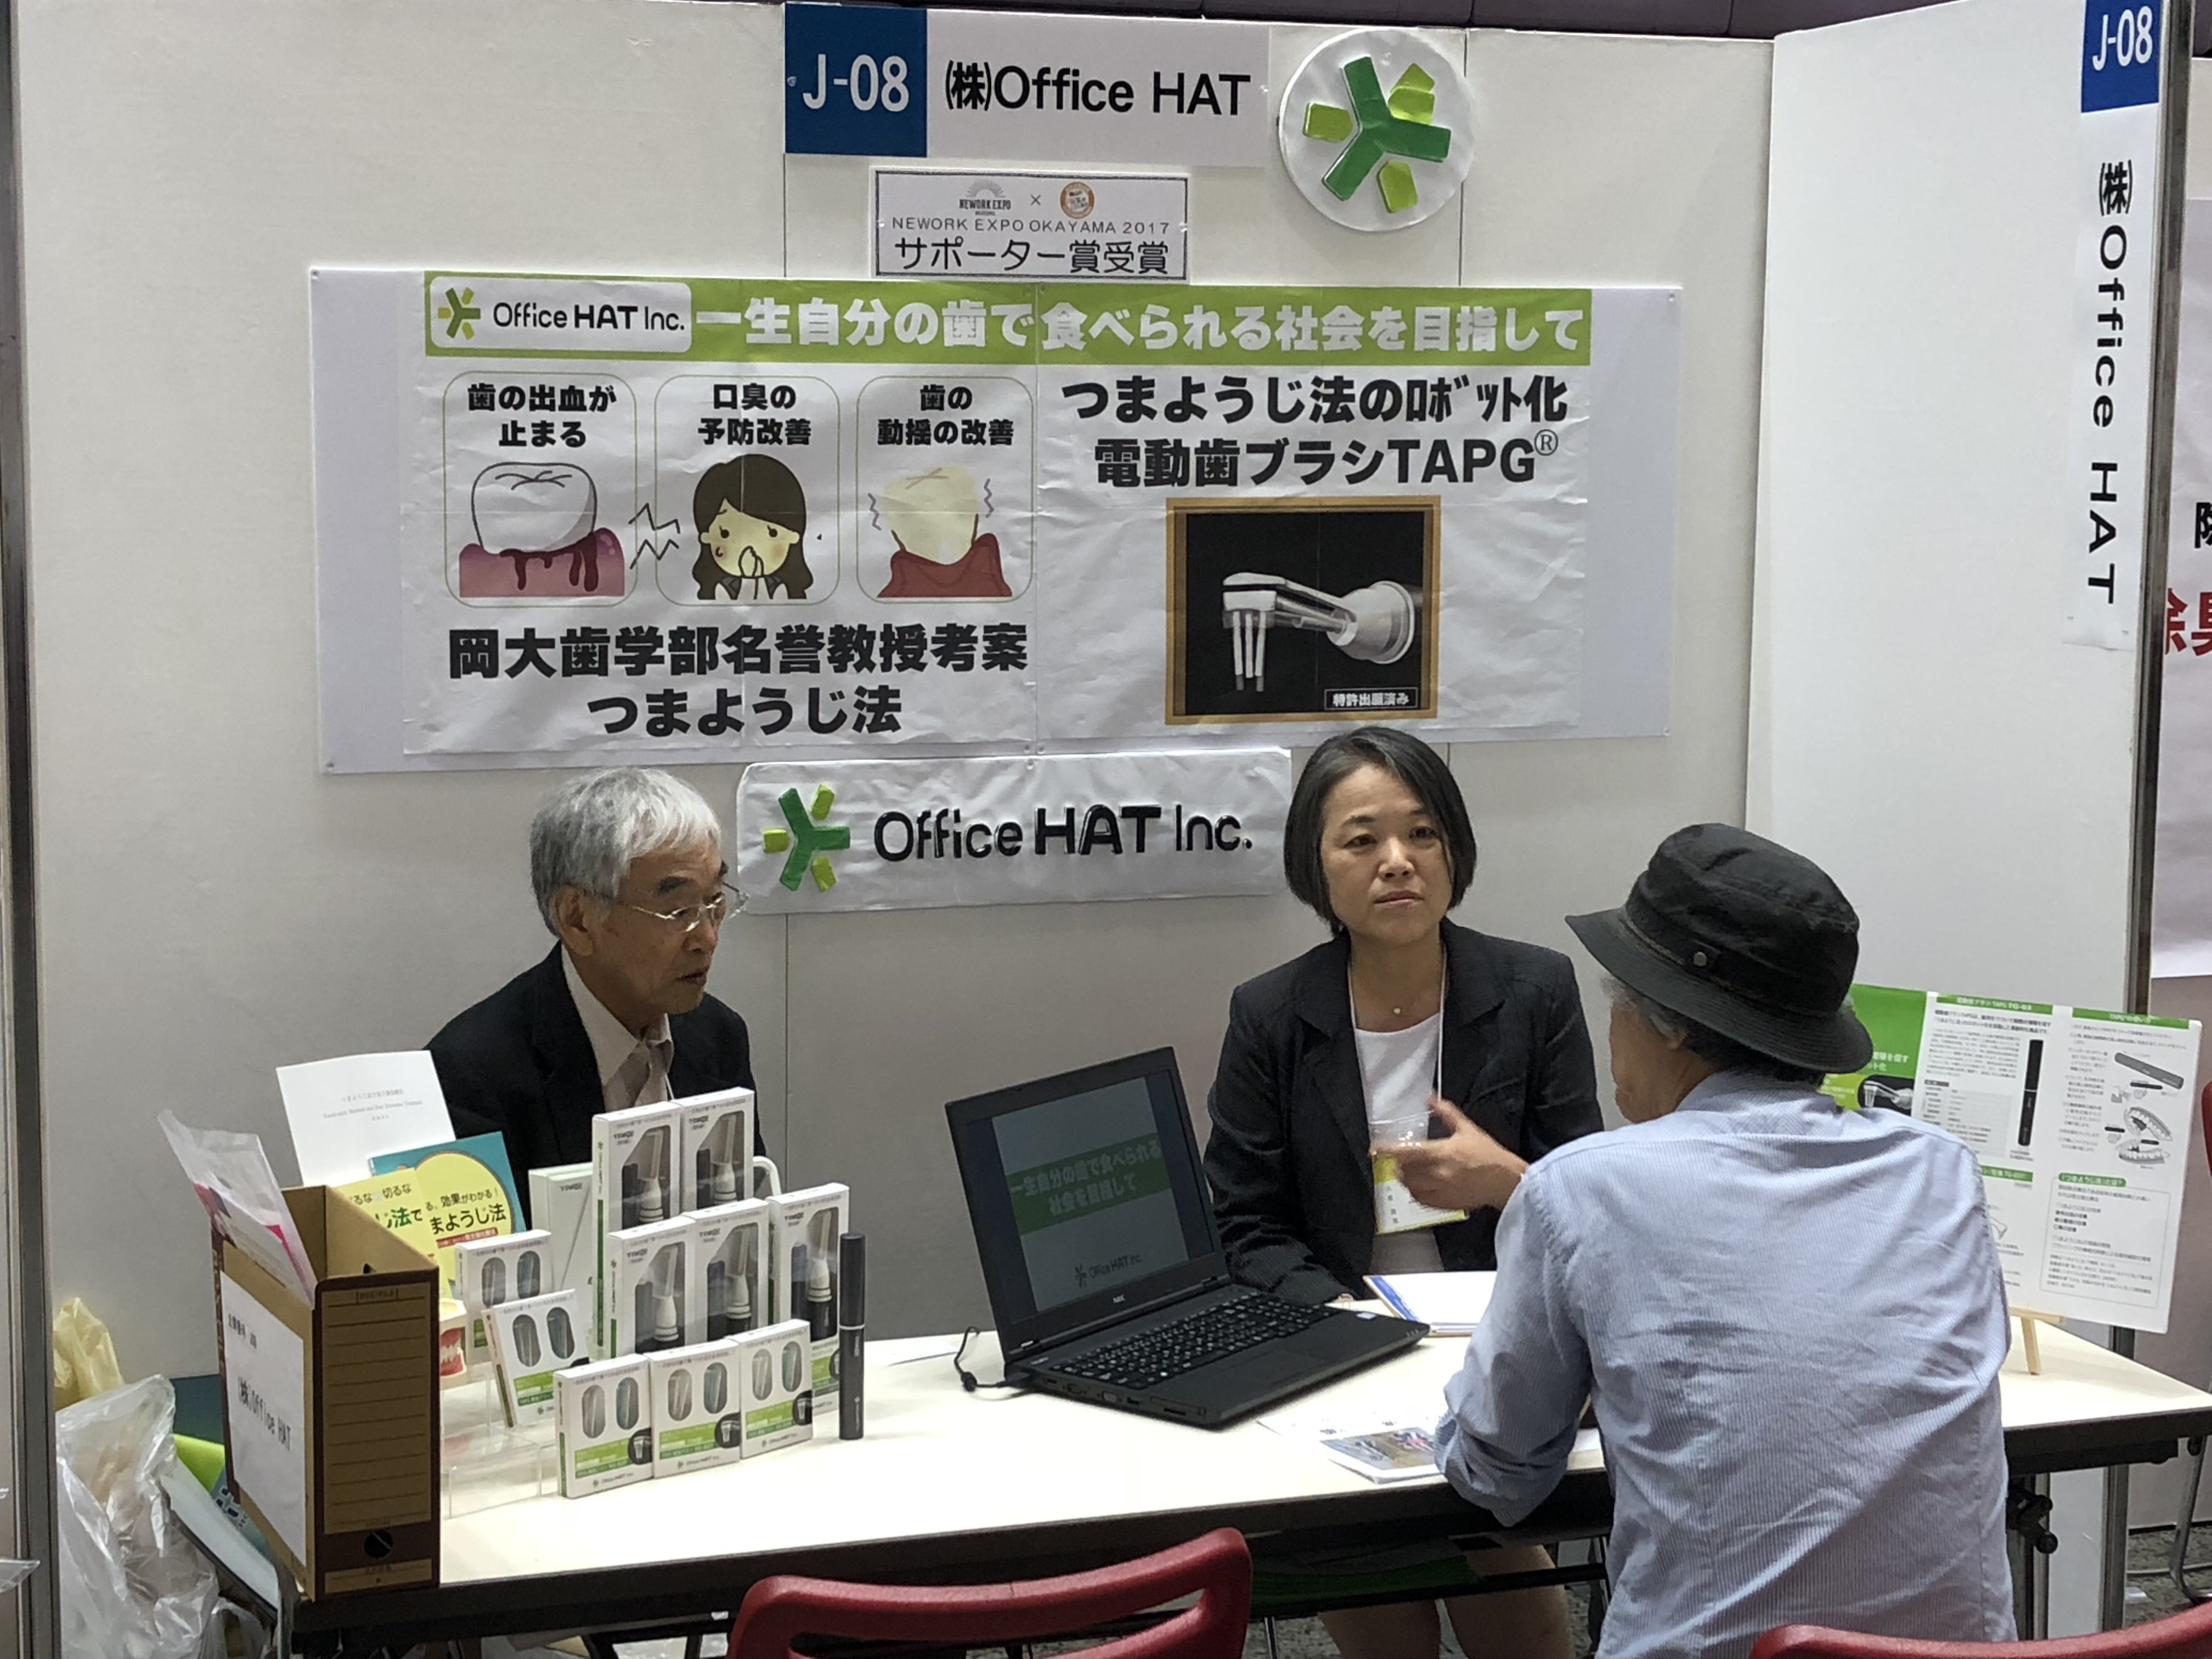 Office HAT出展模様